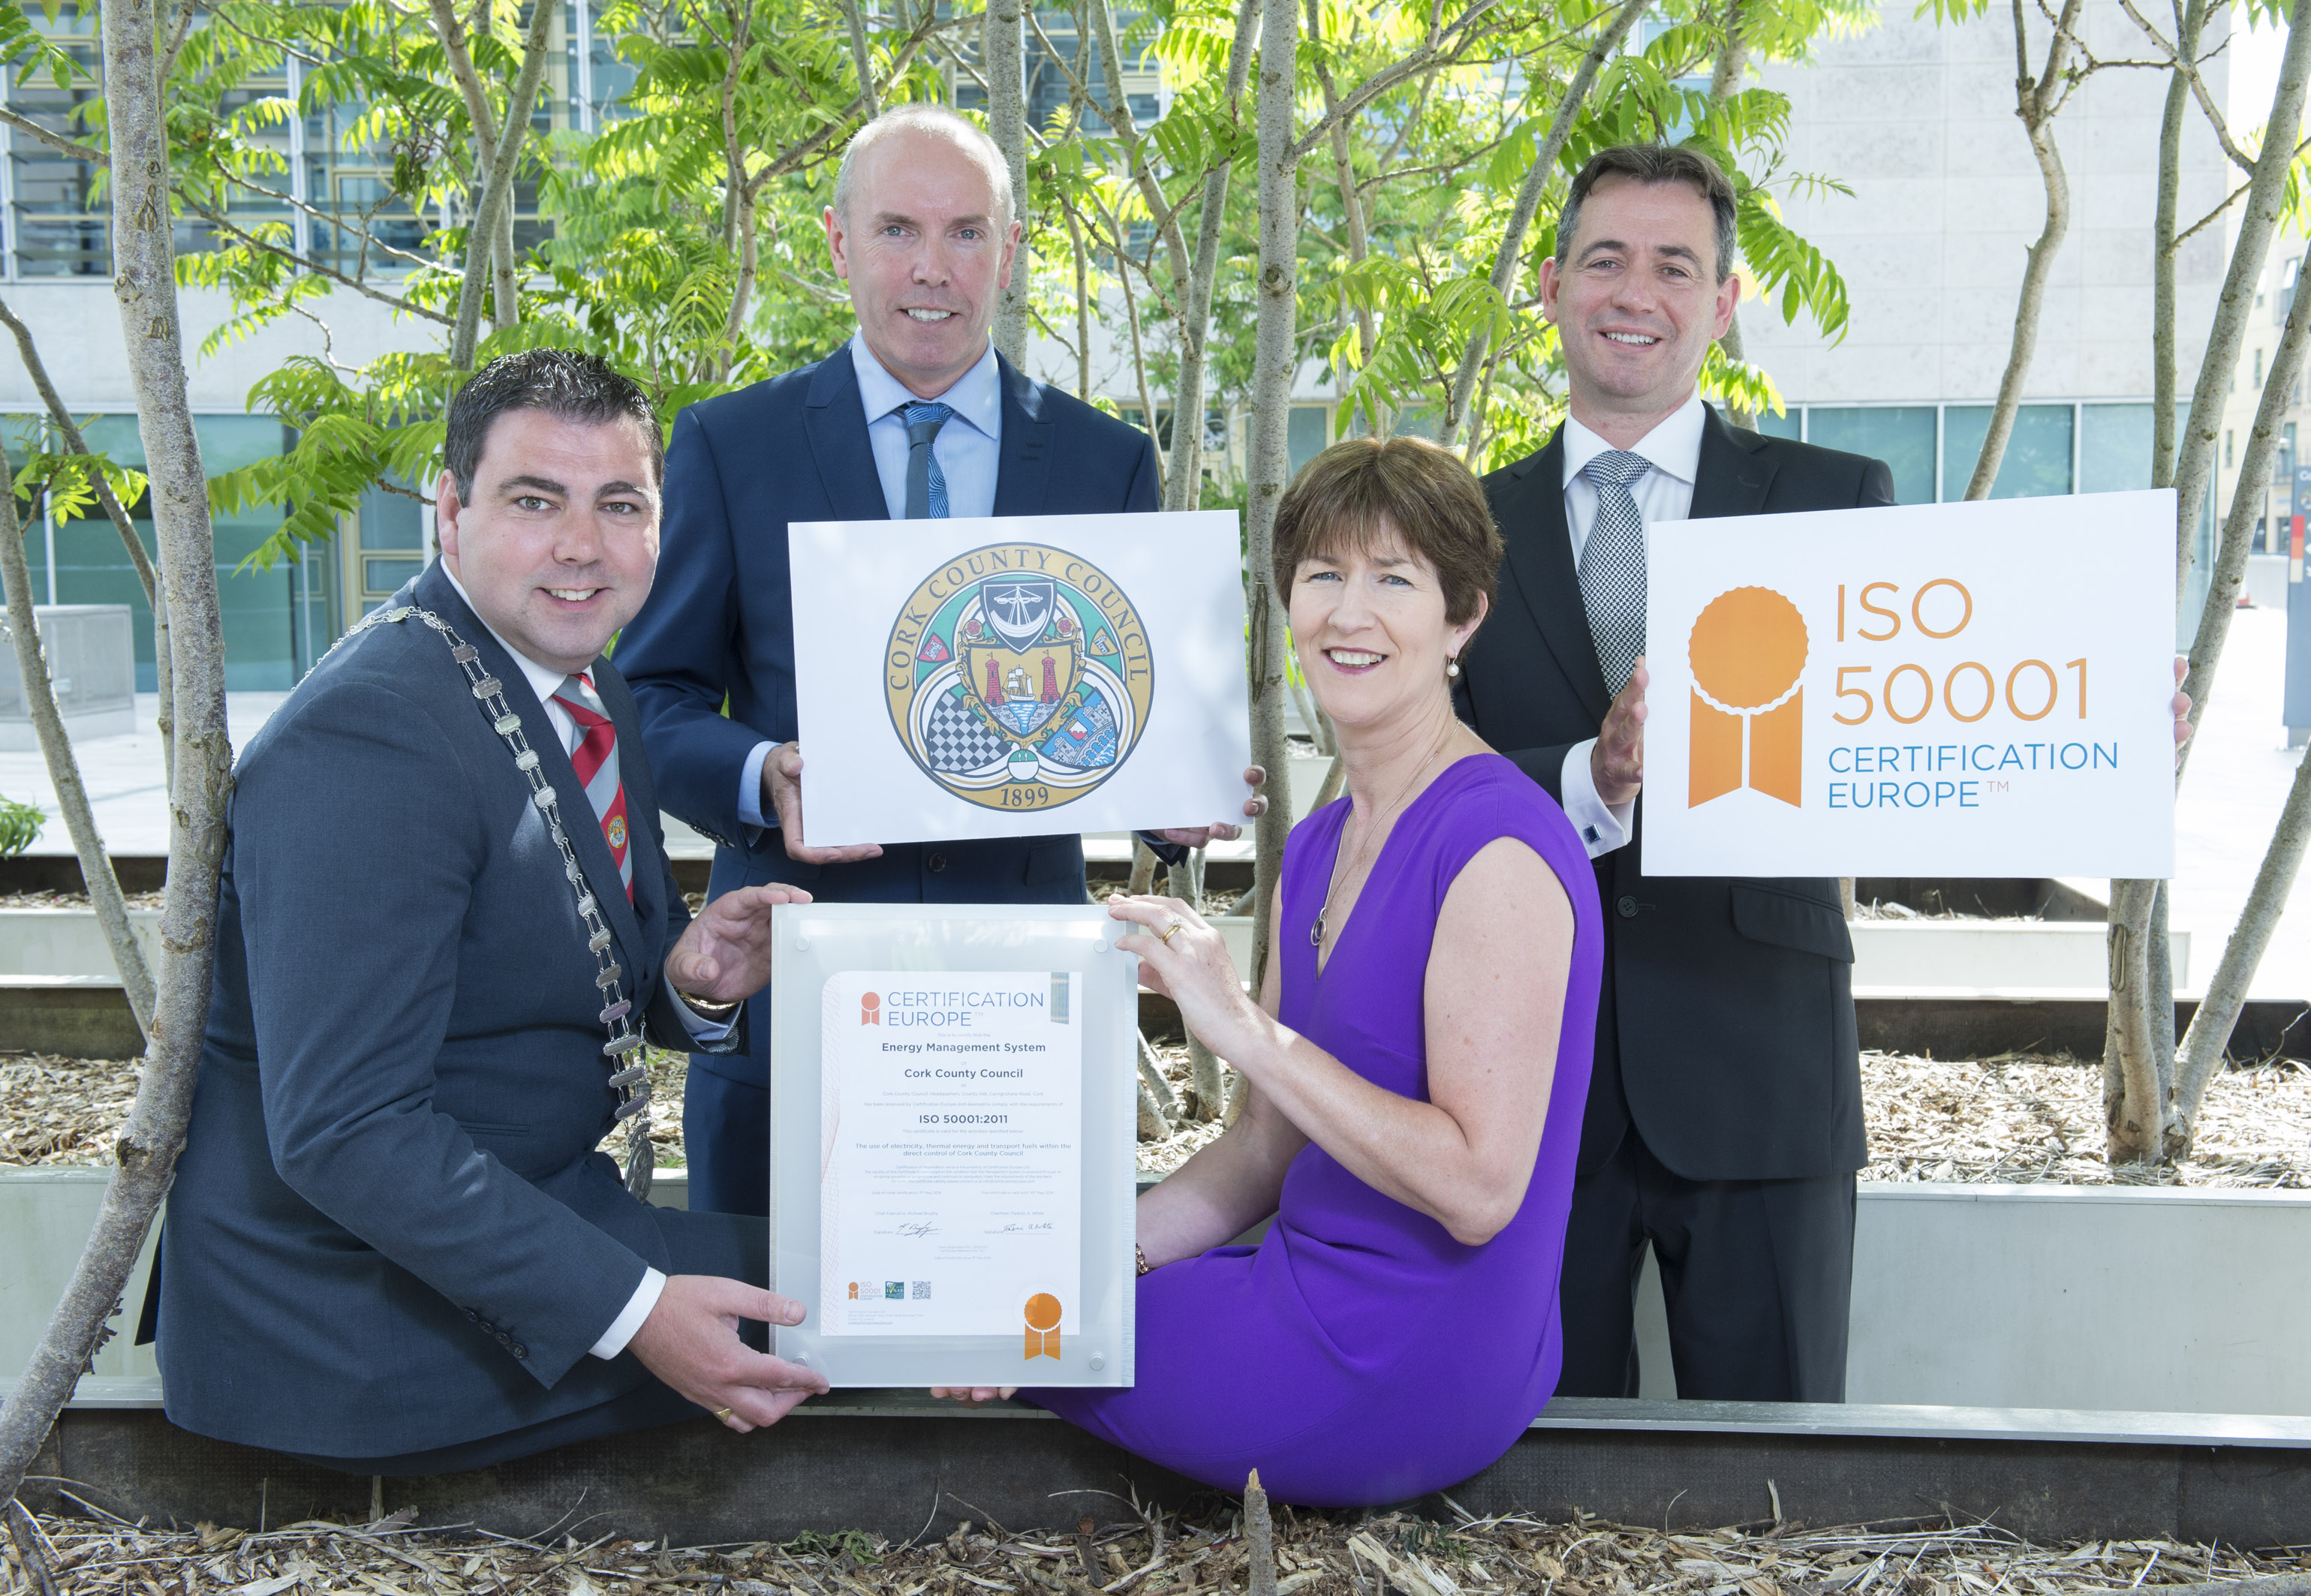 Cork County Council is Ireland's first Local Authority to receive ISO50001 Accreditation